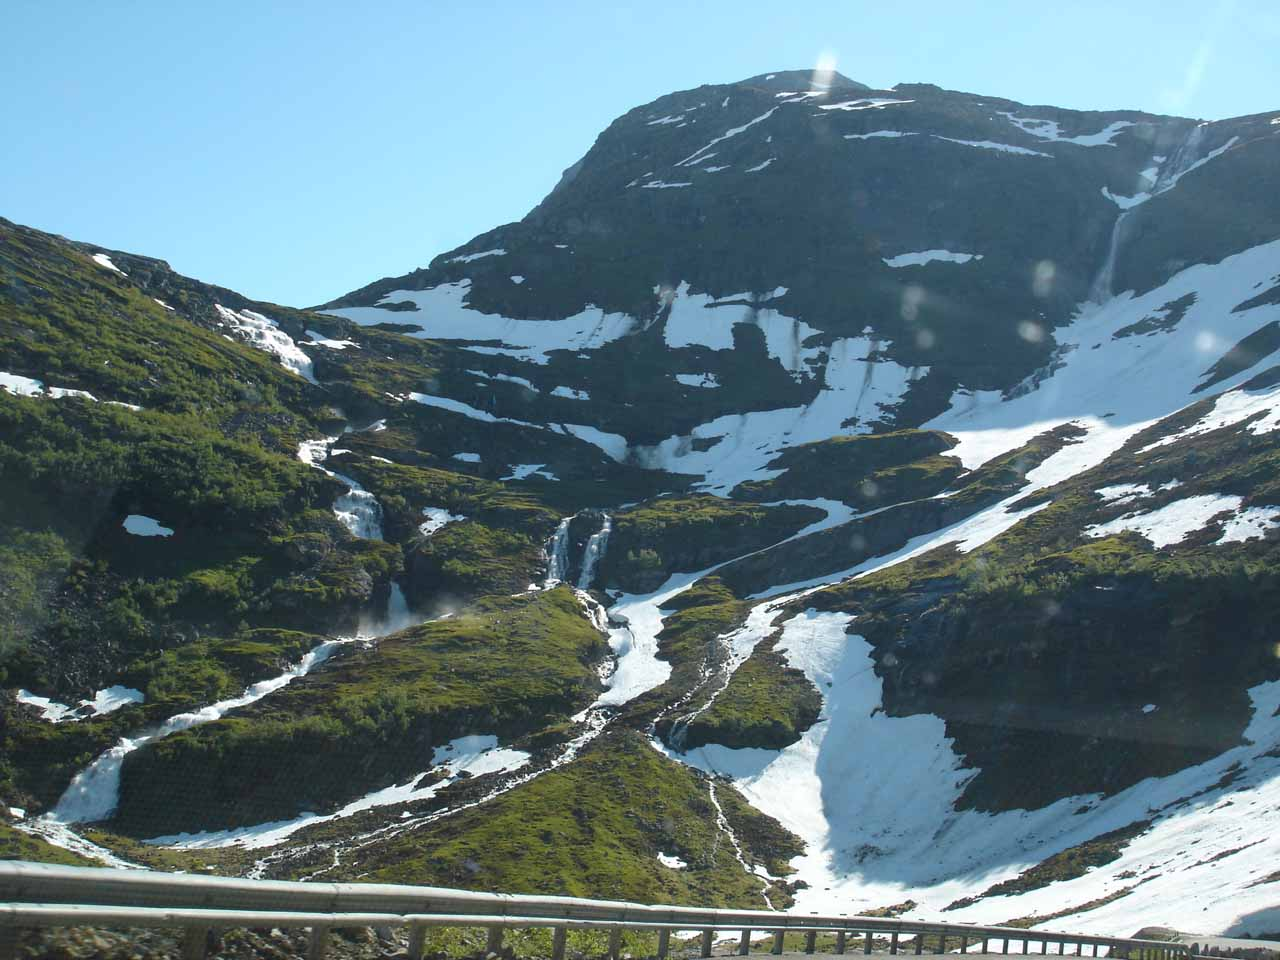 This was our view of what I believe to be the uppermost tiers of Kvanndalsfossen as we were descending towards Kvanndalsbrua on Road 63